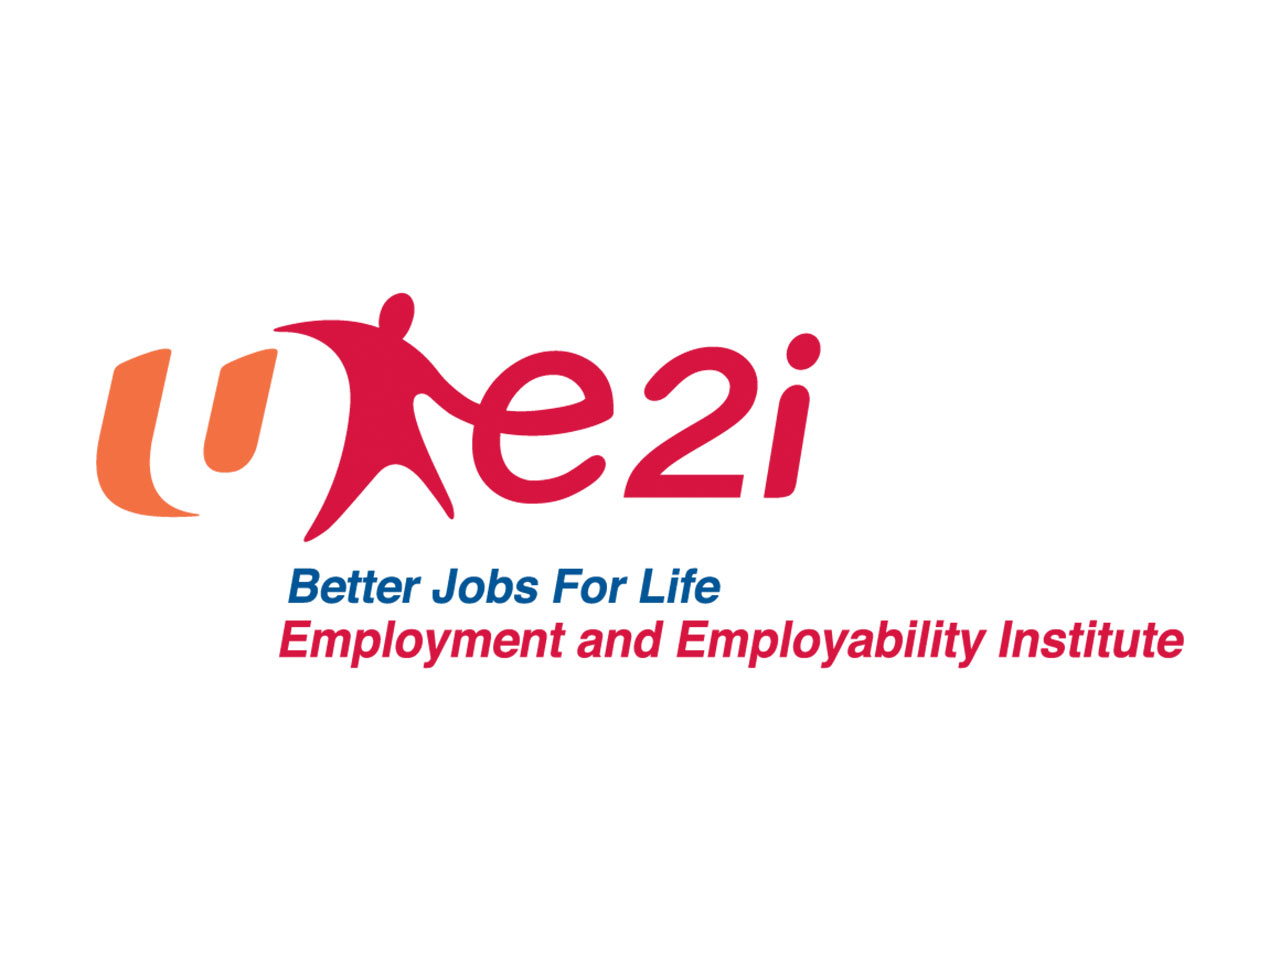 Employment and Employability Institute